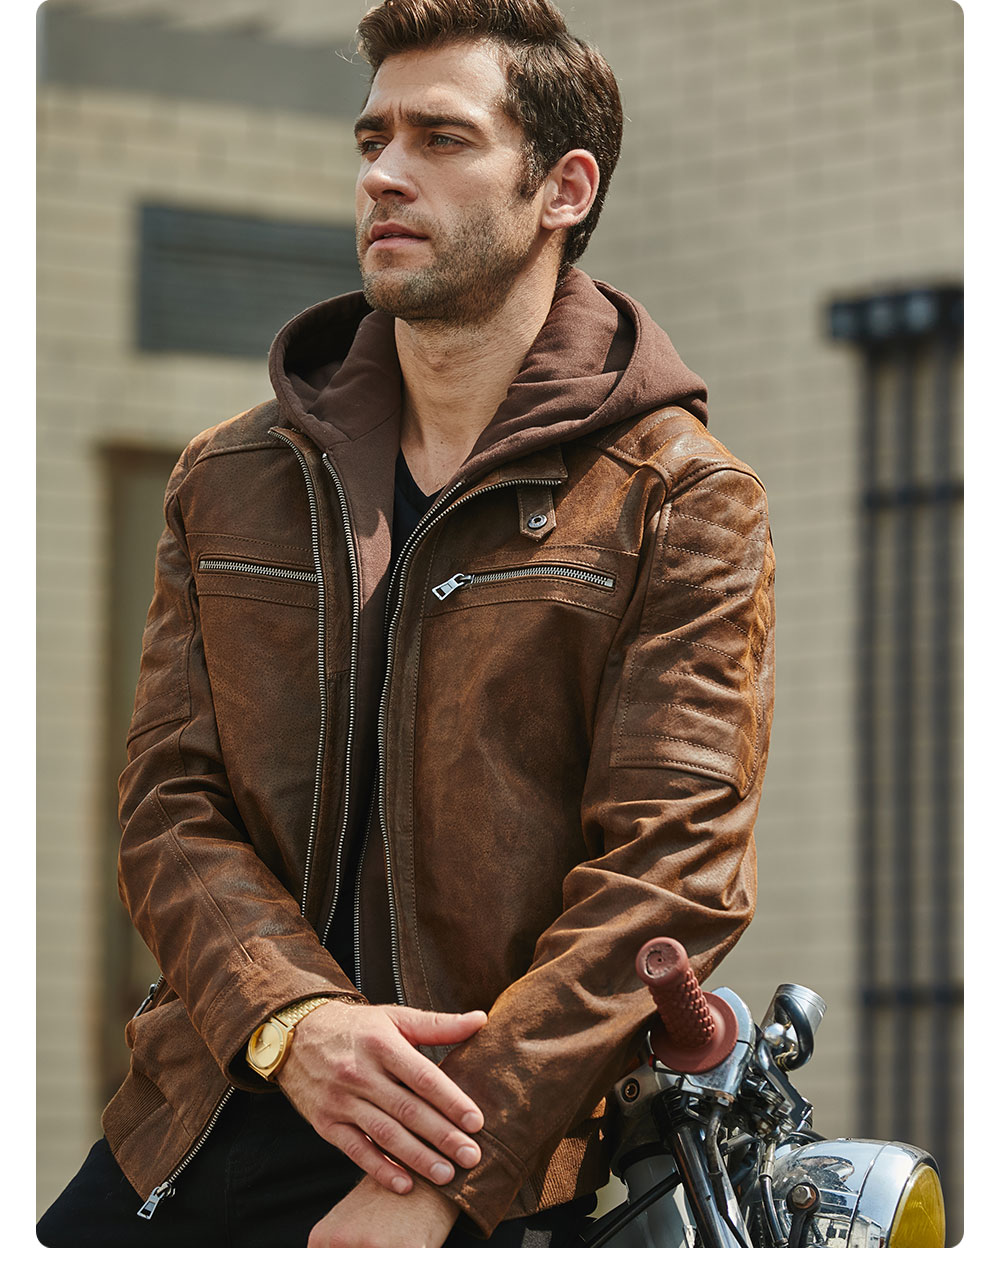 Hf903e2a2171a4748920c1109a50803ebM New Men's Leather Jacket, Brown Jacket Made Of Genuine Leather With A Removable Hood, Warm Leather Jacket For Men For The Winter